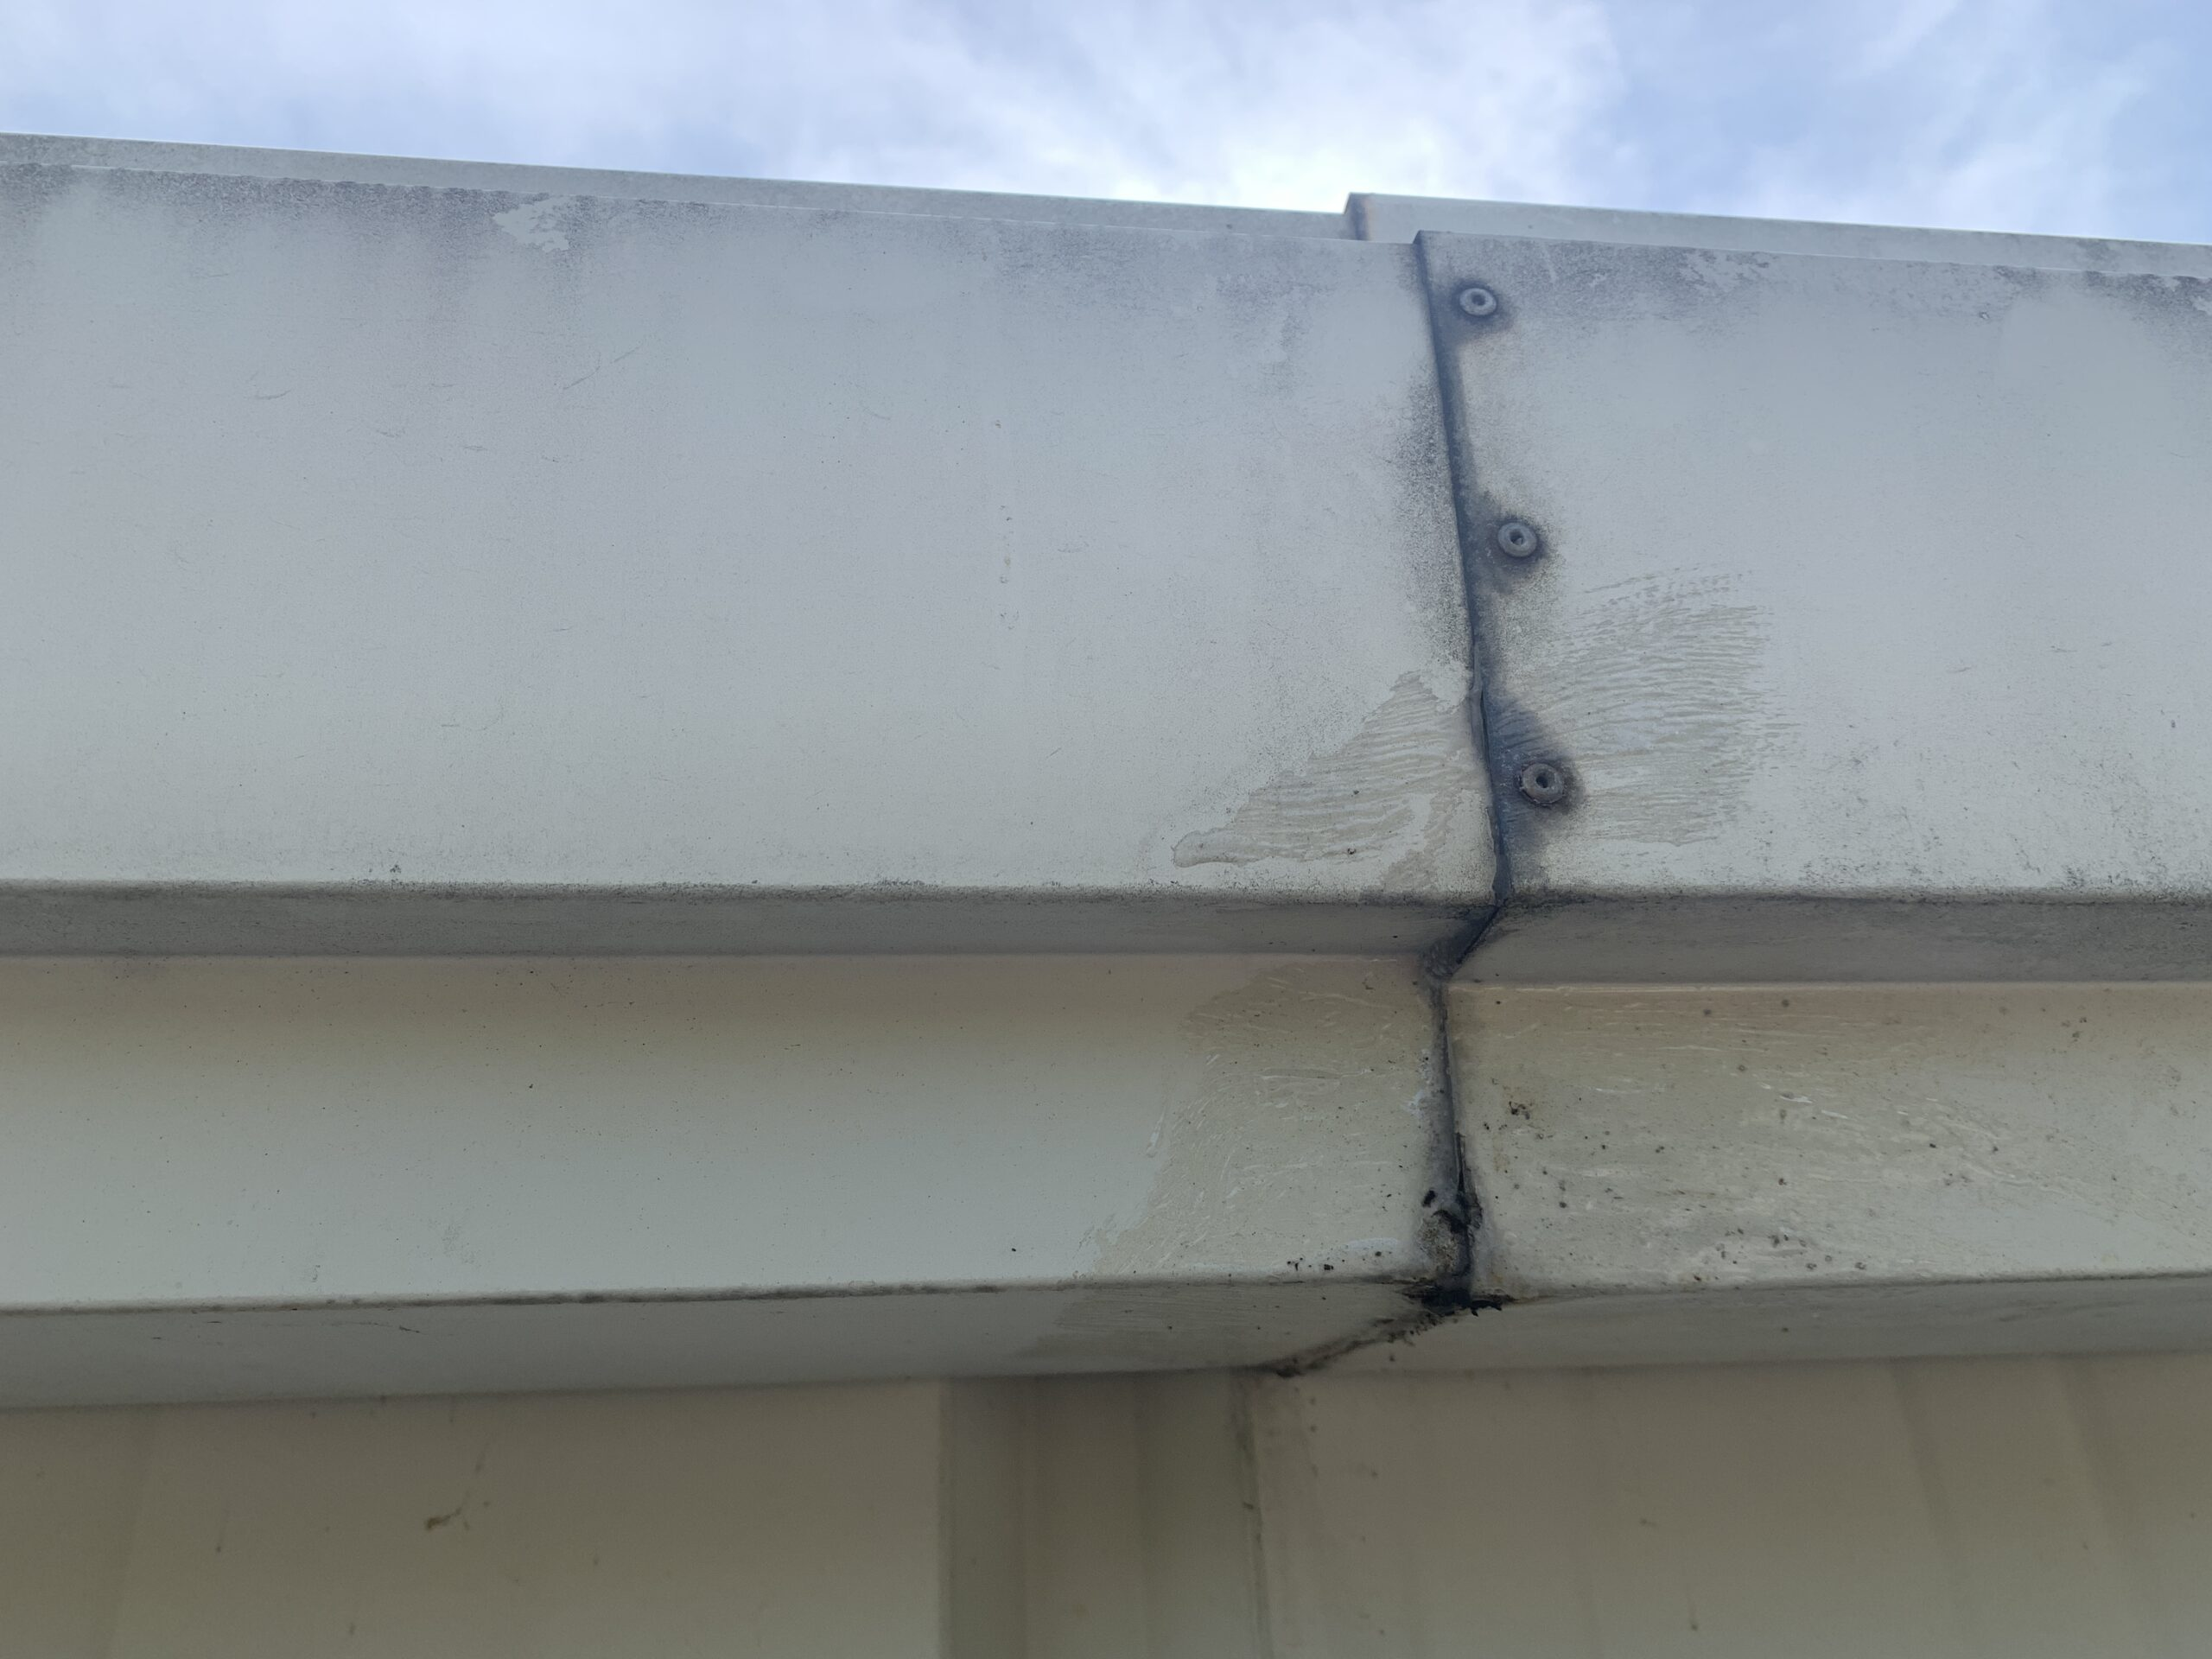 this is a picture of commercial gutters that appear to be leaking